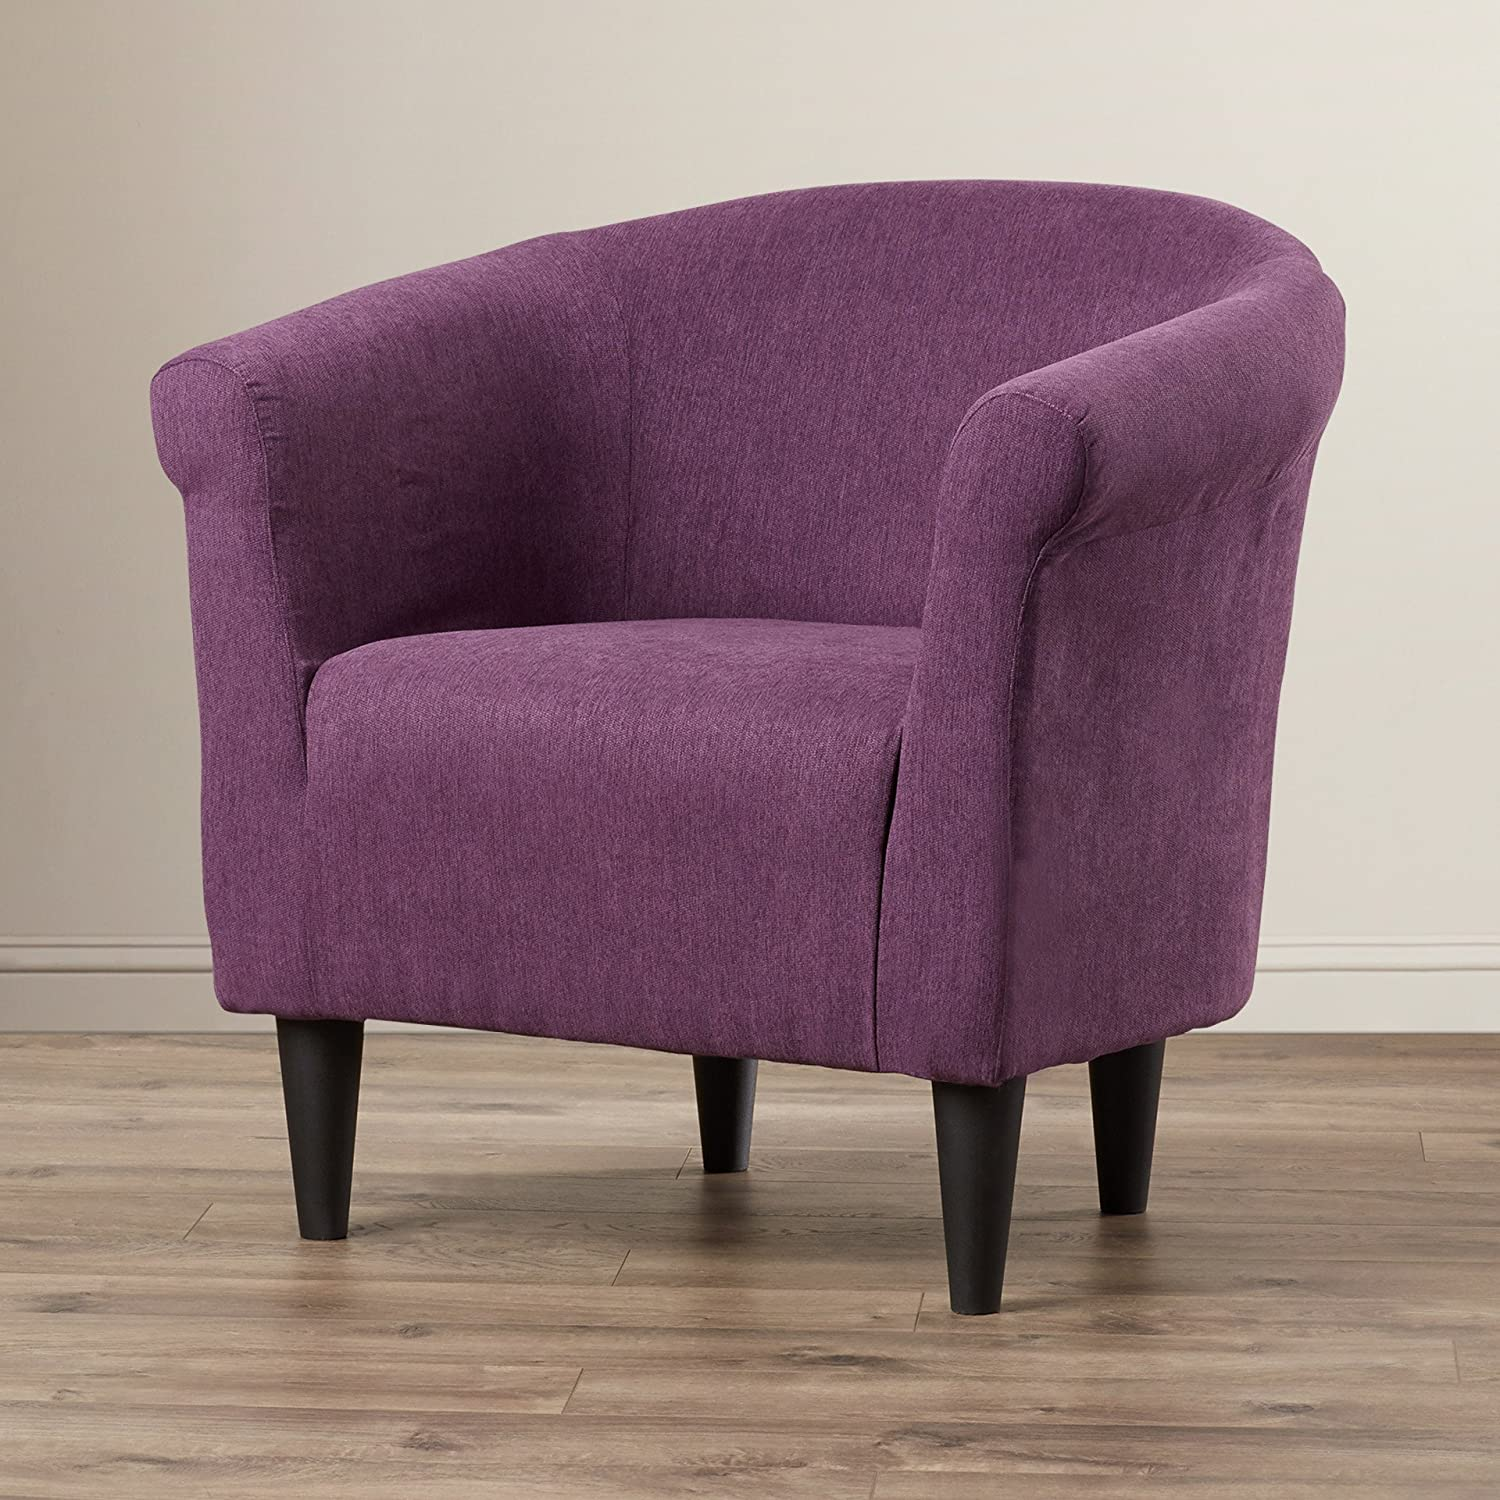 Big Purple Chair For Living Room Make It Look Royal And